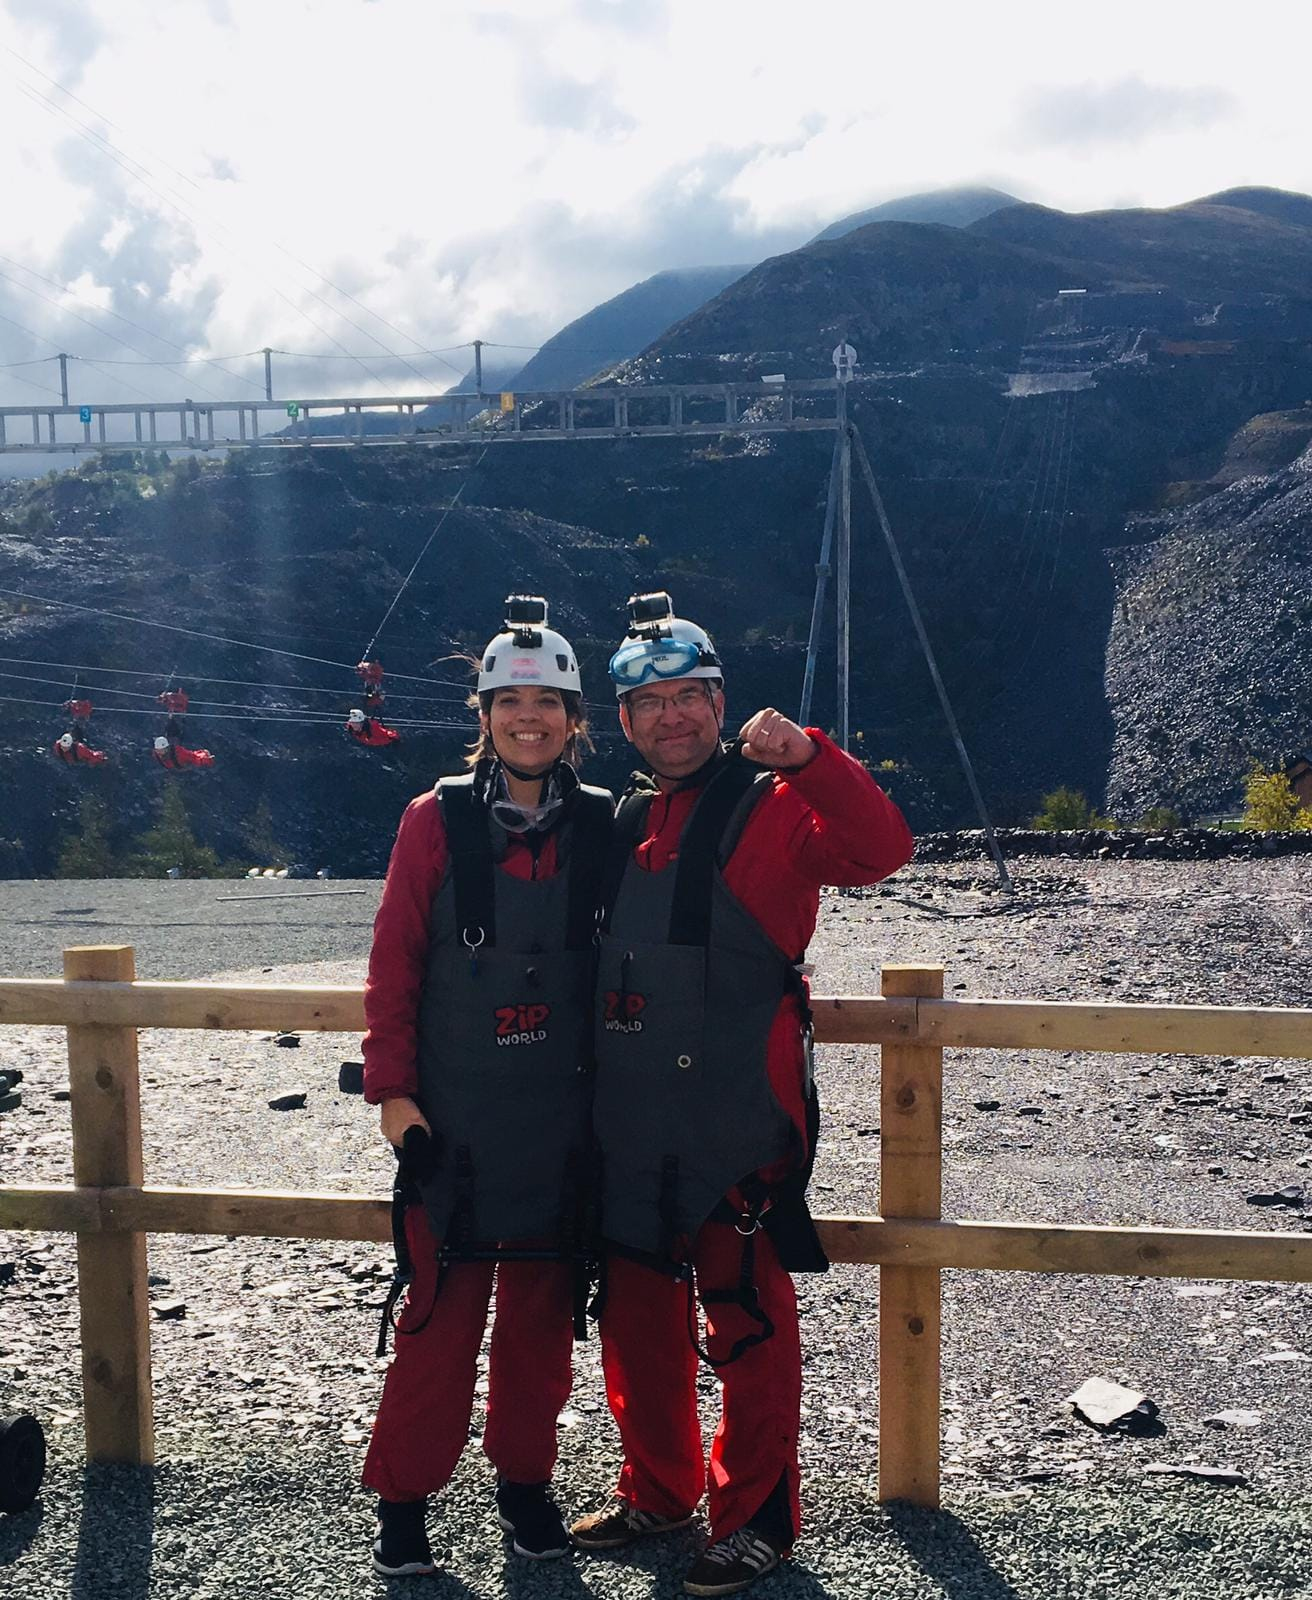 The Aquila Zip Wire Team, from left to right, Kate Todd and Wil Paterson